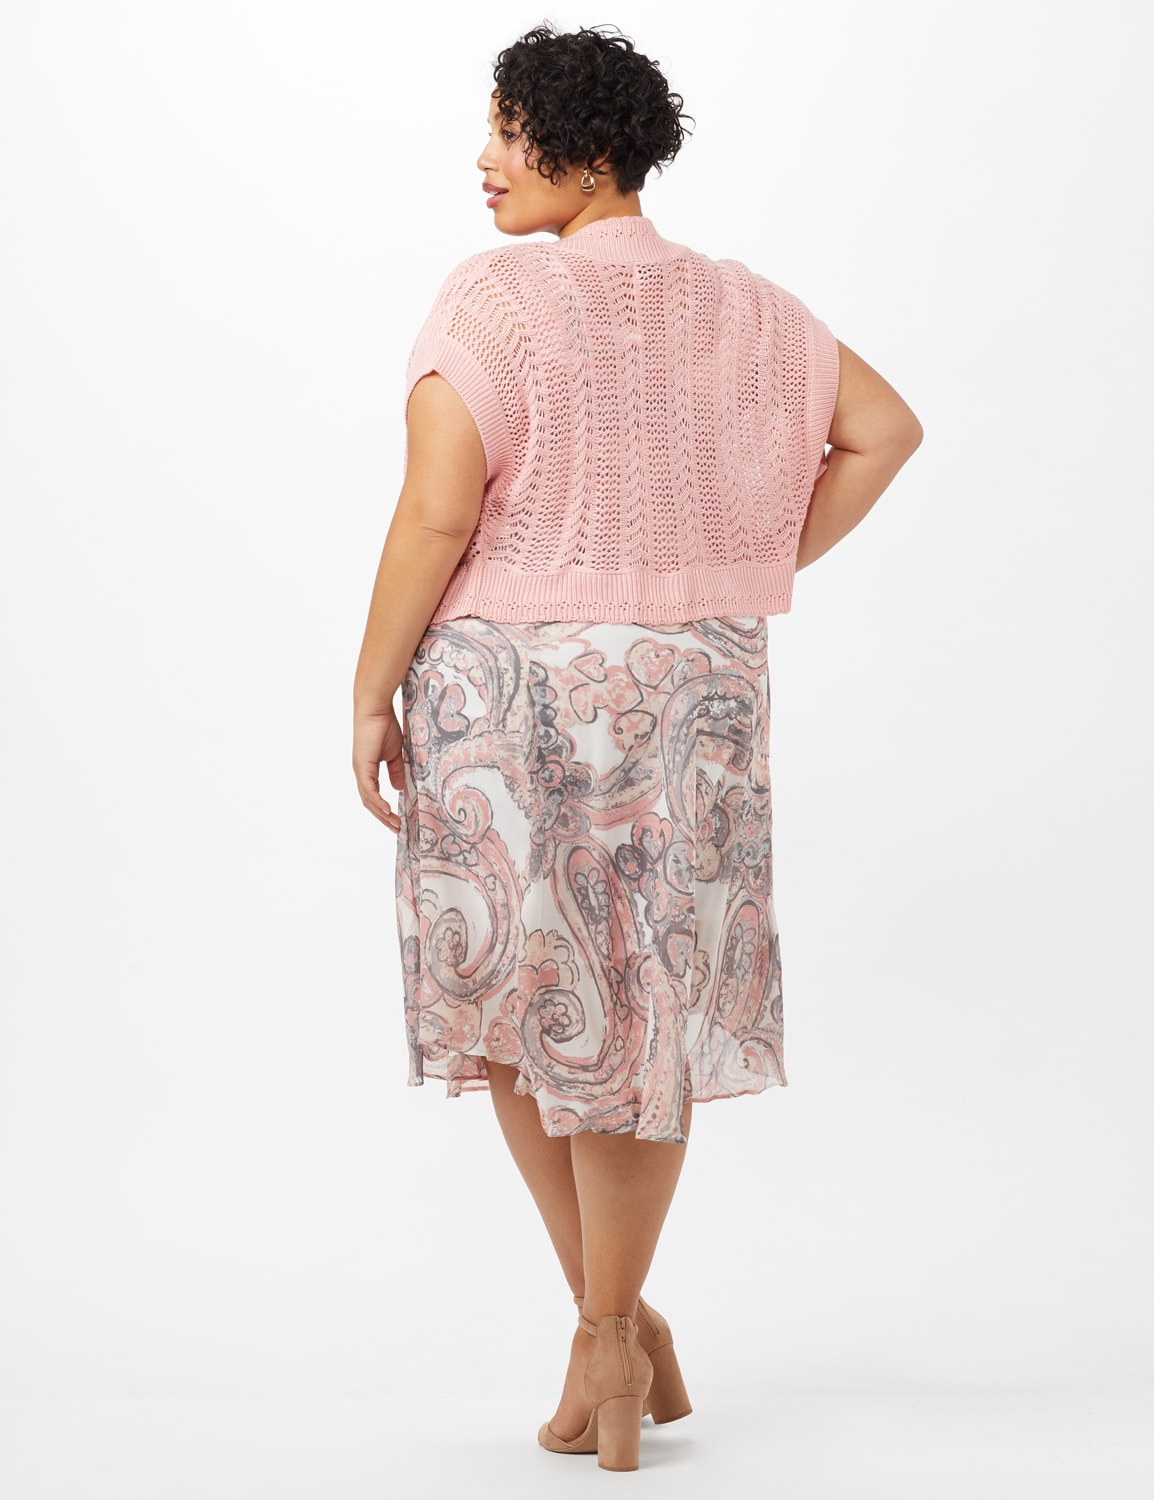 Crochet Sweater Drape Neck Chiffon Dress - Grey /Pink - Back